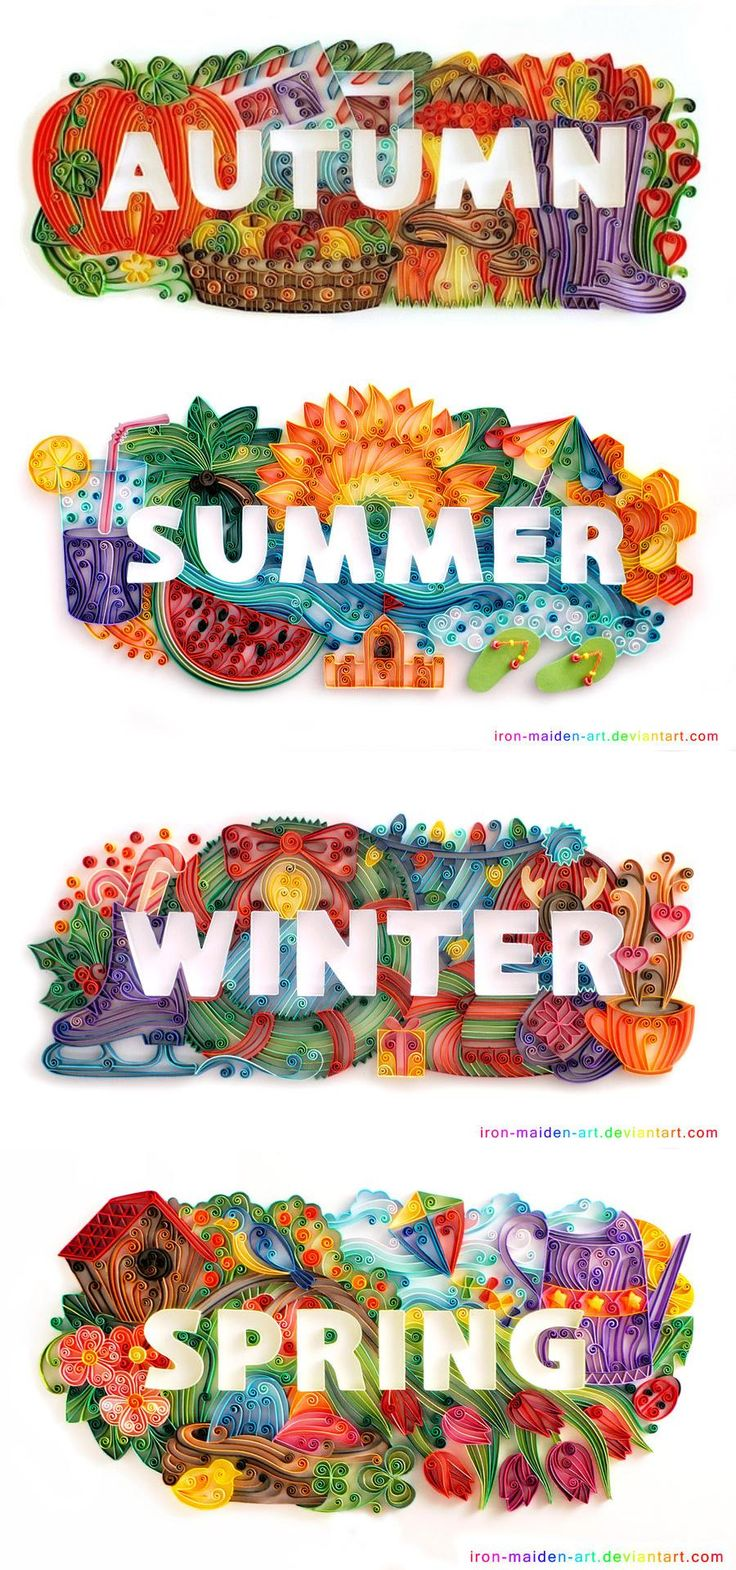 Autumn/Fall, Summer, Winter, and Spring quilled! So creative! Letras hechas en cartulina, papel de colores con efecto 3D